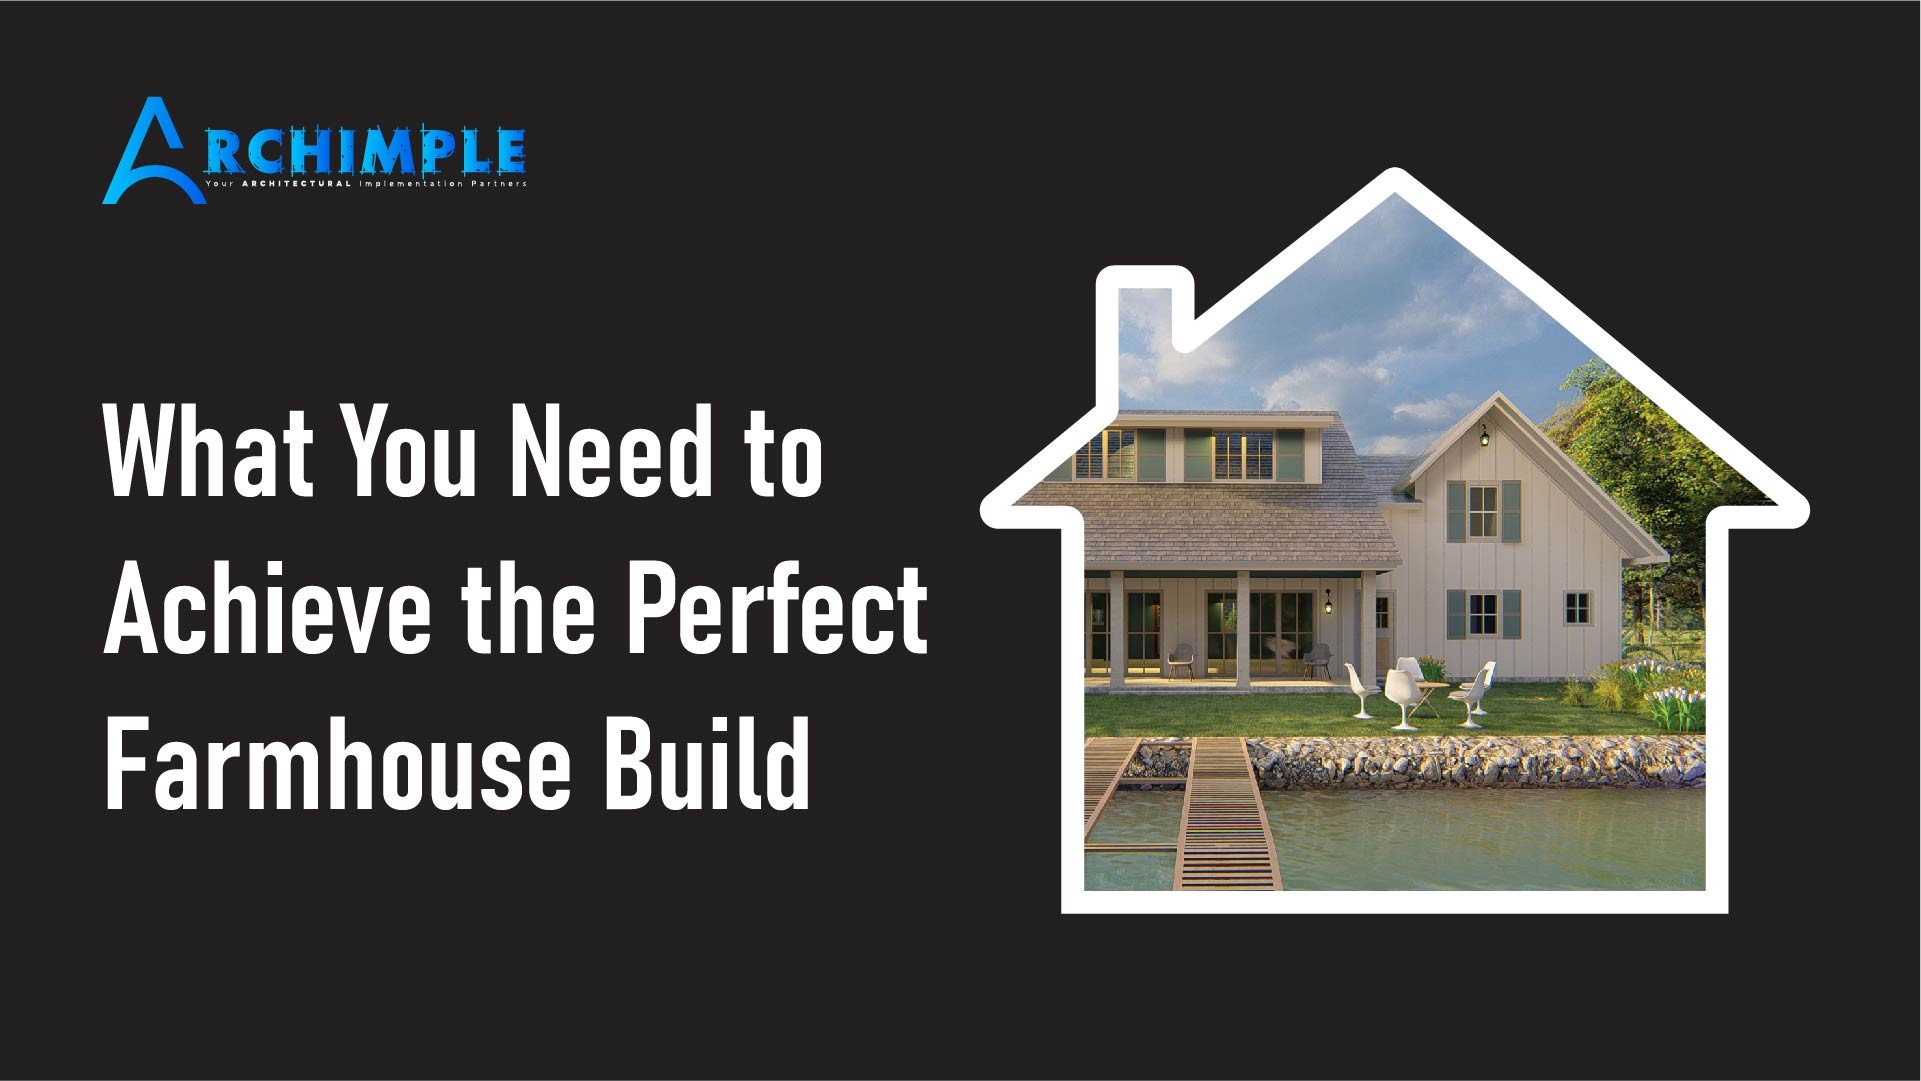 What You Need to Achieve the Perfect Farmhouse Build